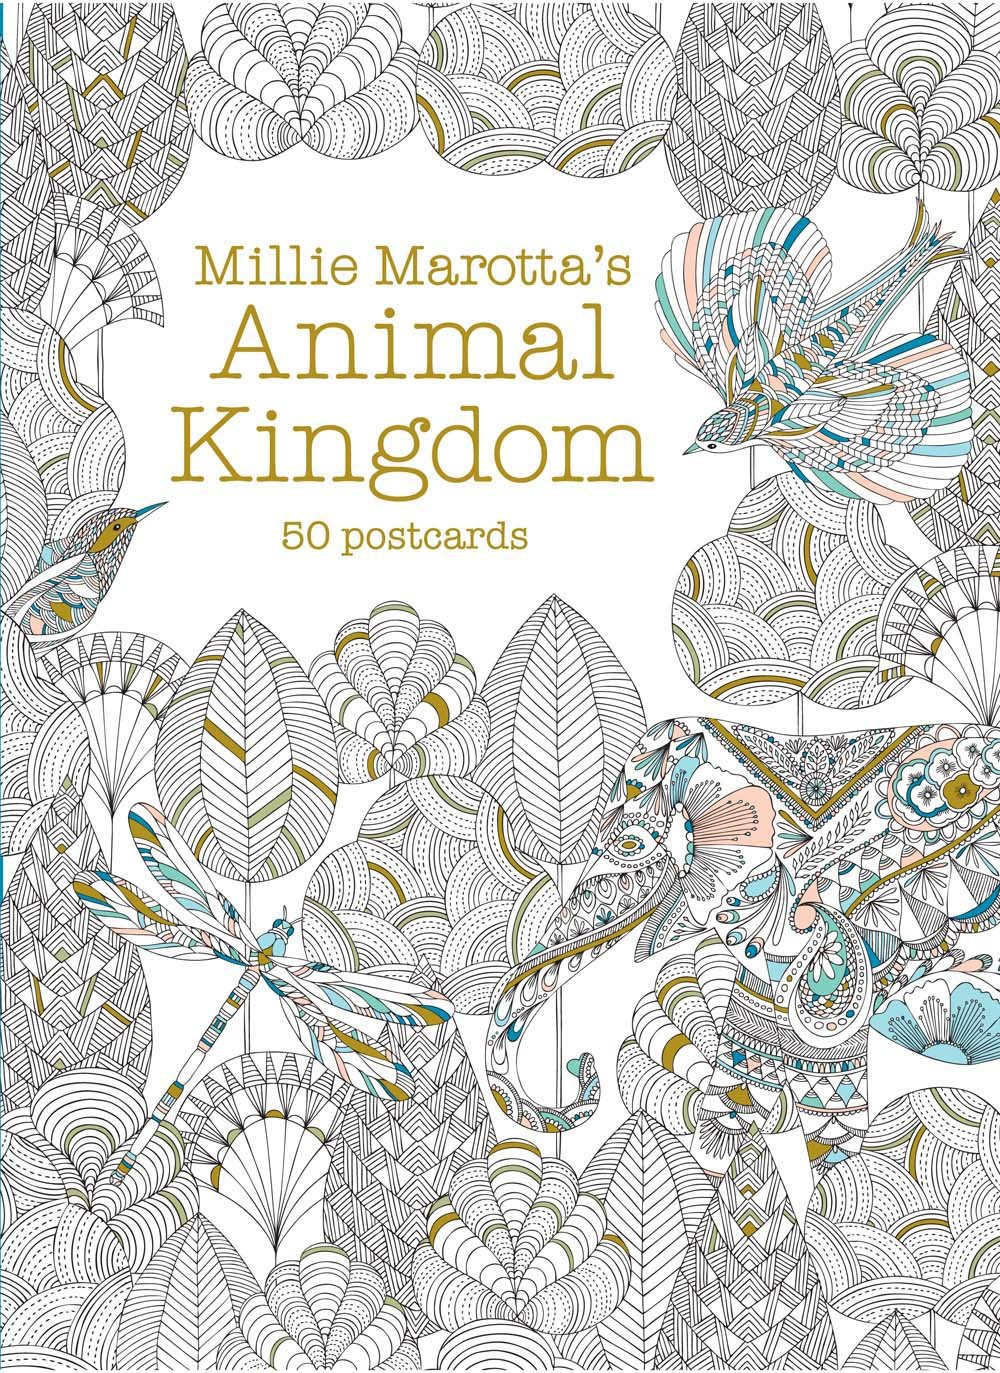 Coloring book animal kingdom - Amazon Com Millie Marotta S Animal Kingdom Postcard Box 50 Postcards A Millie Marotta Adult Coloring Book 9781454709282 Millie Marotta Books